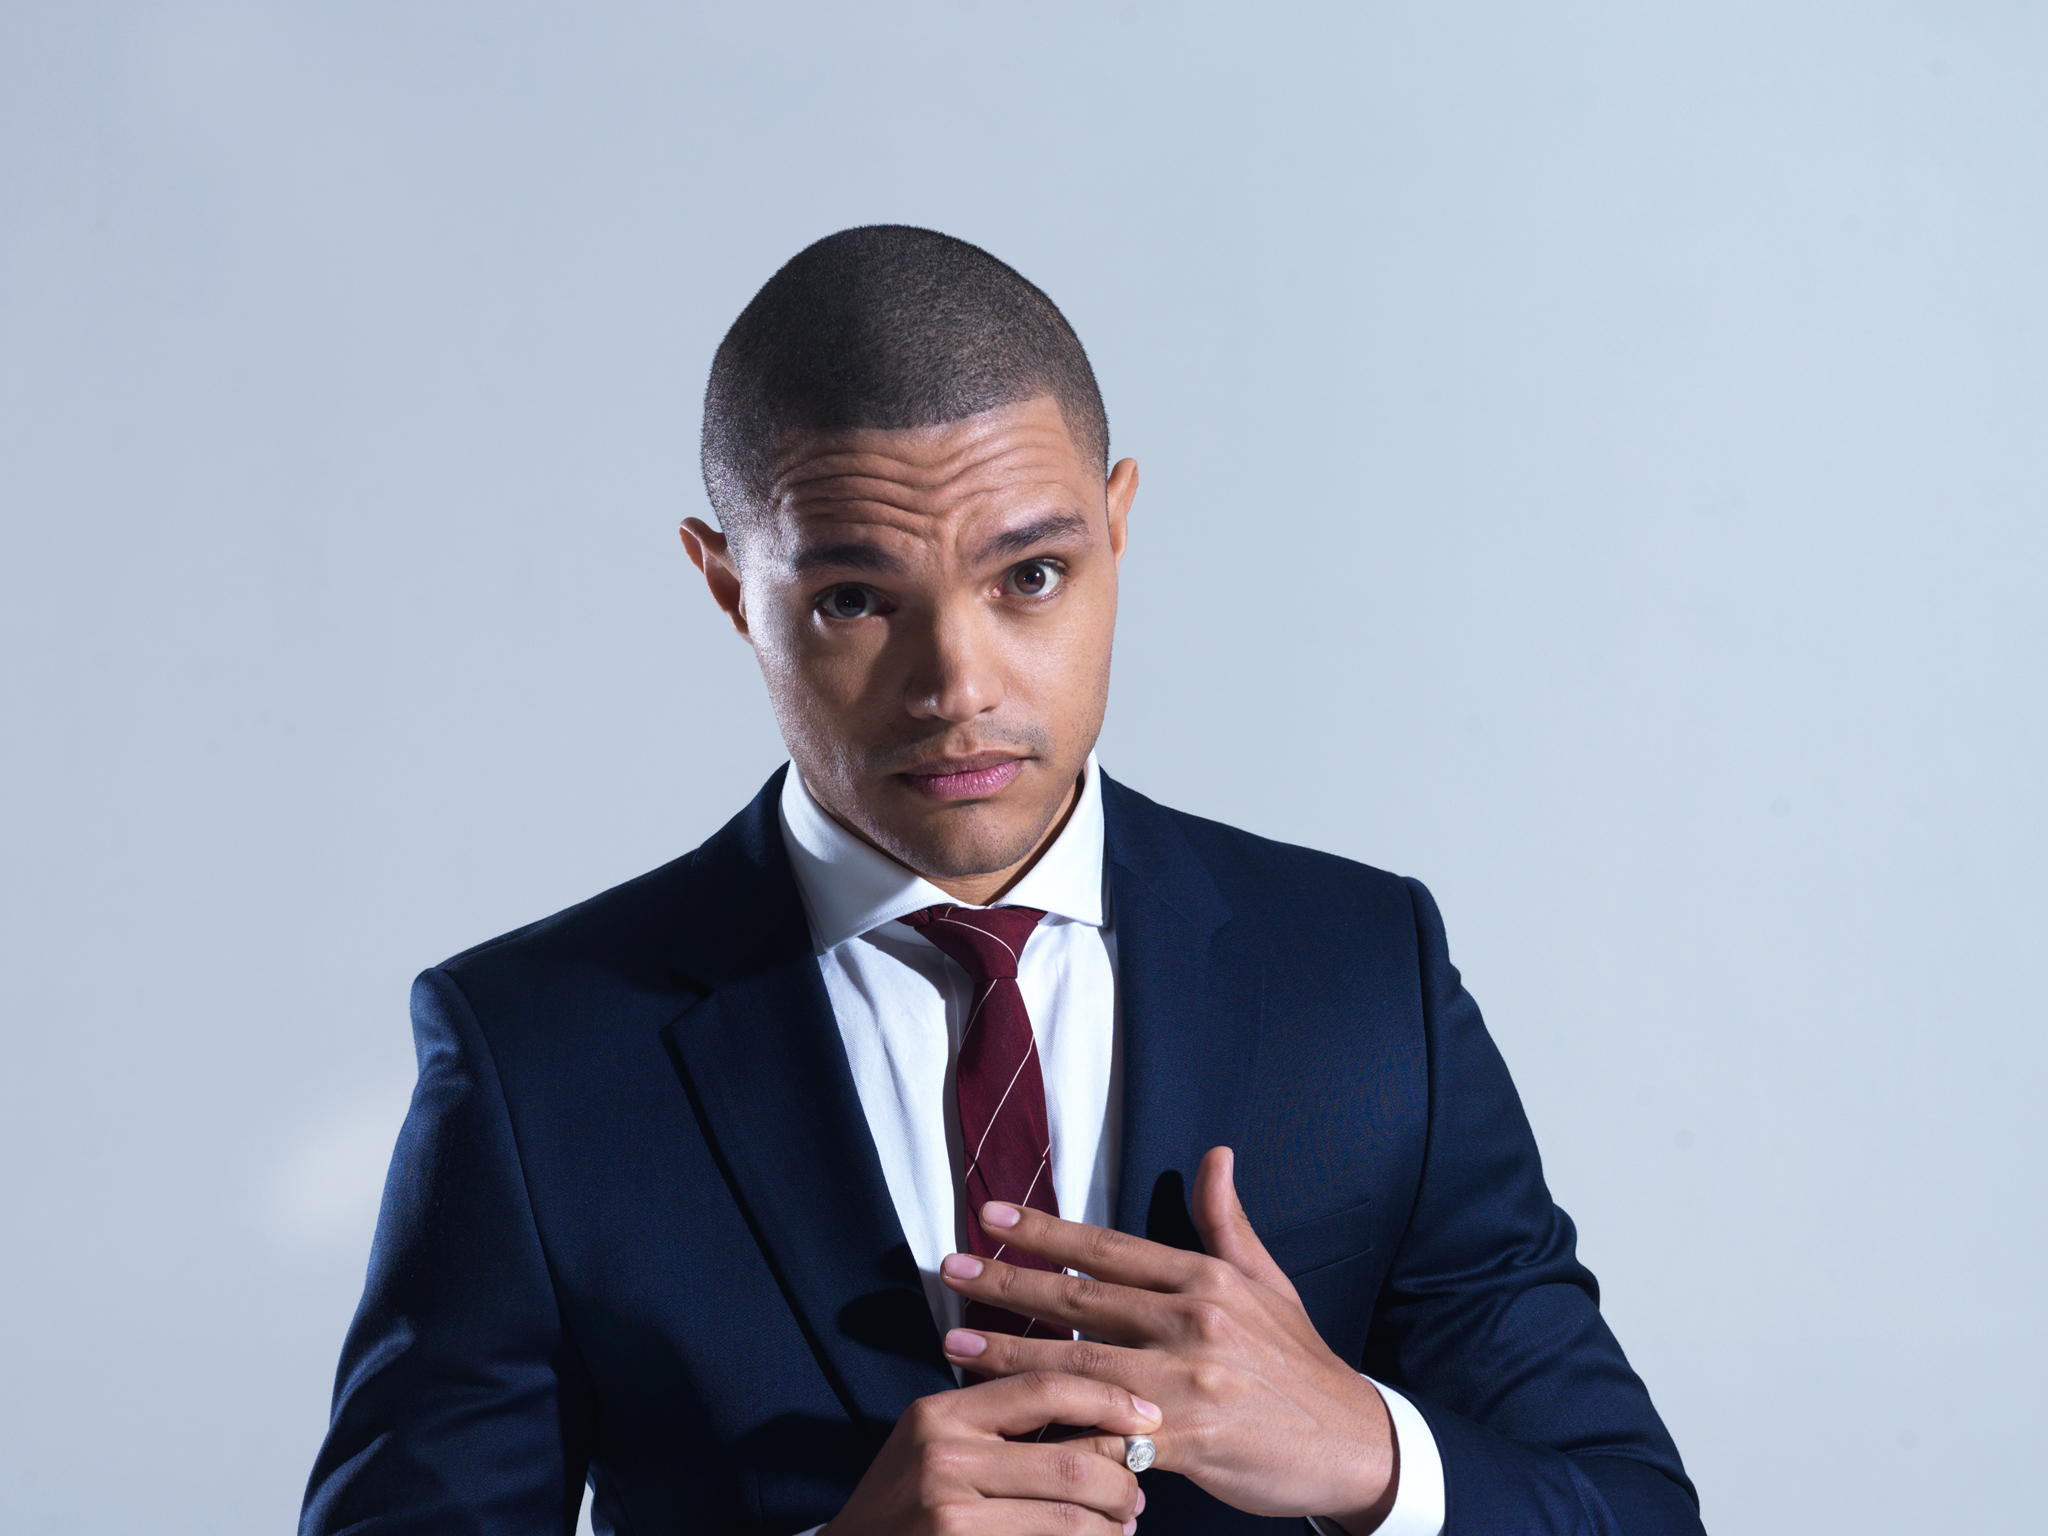 Trevor Noah: Lost in Translation